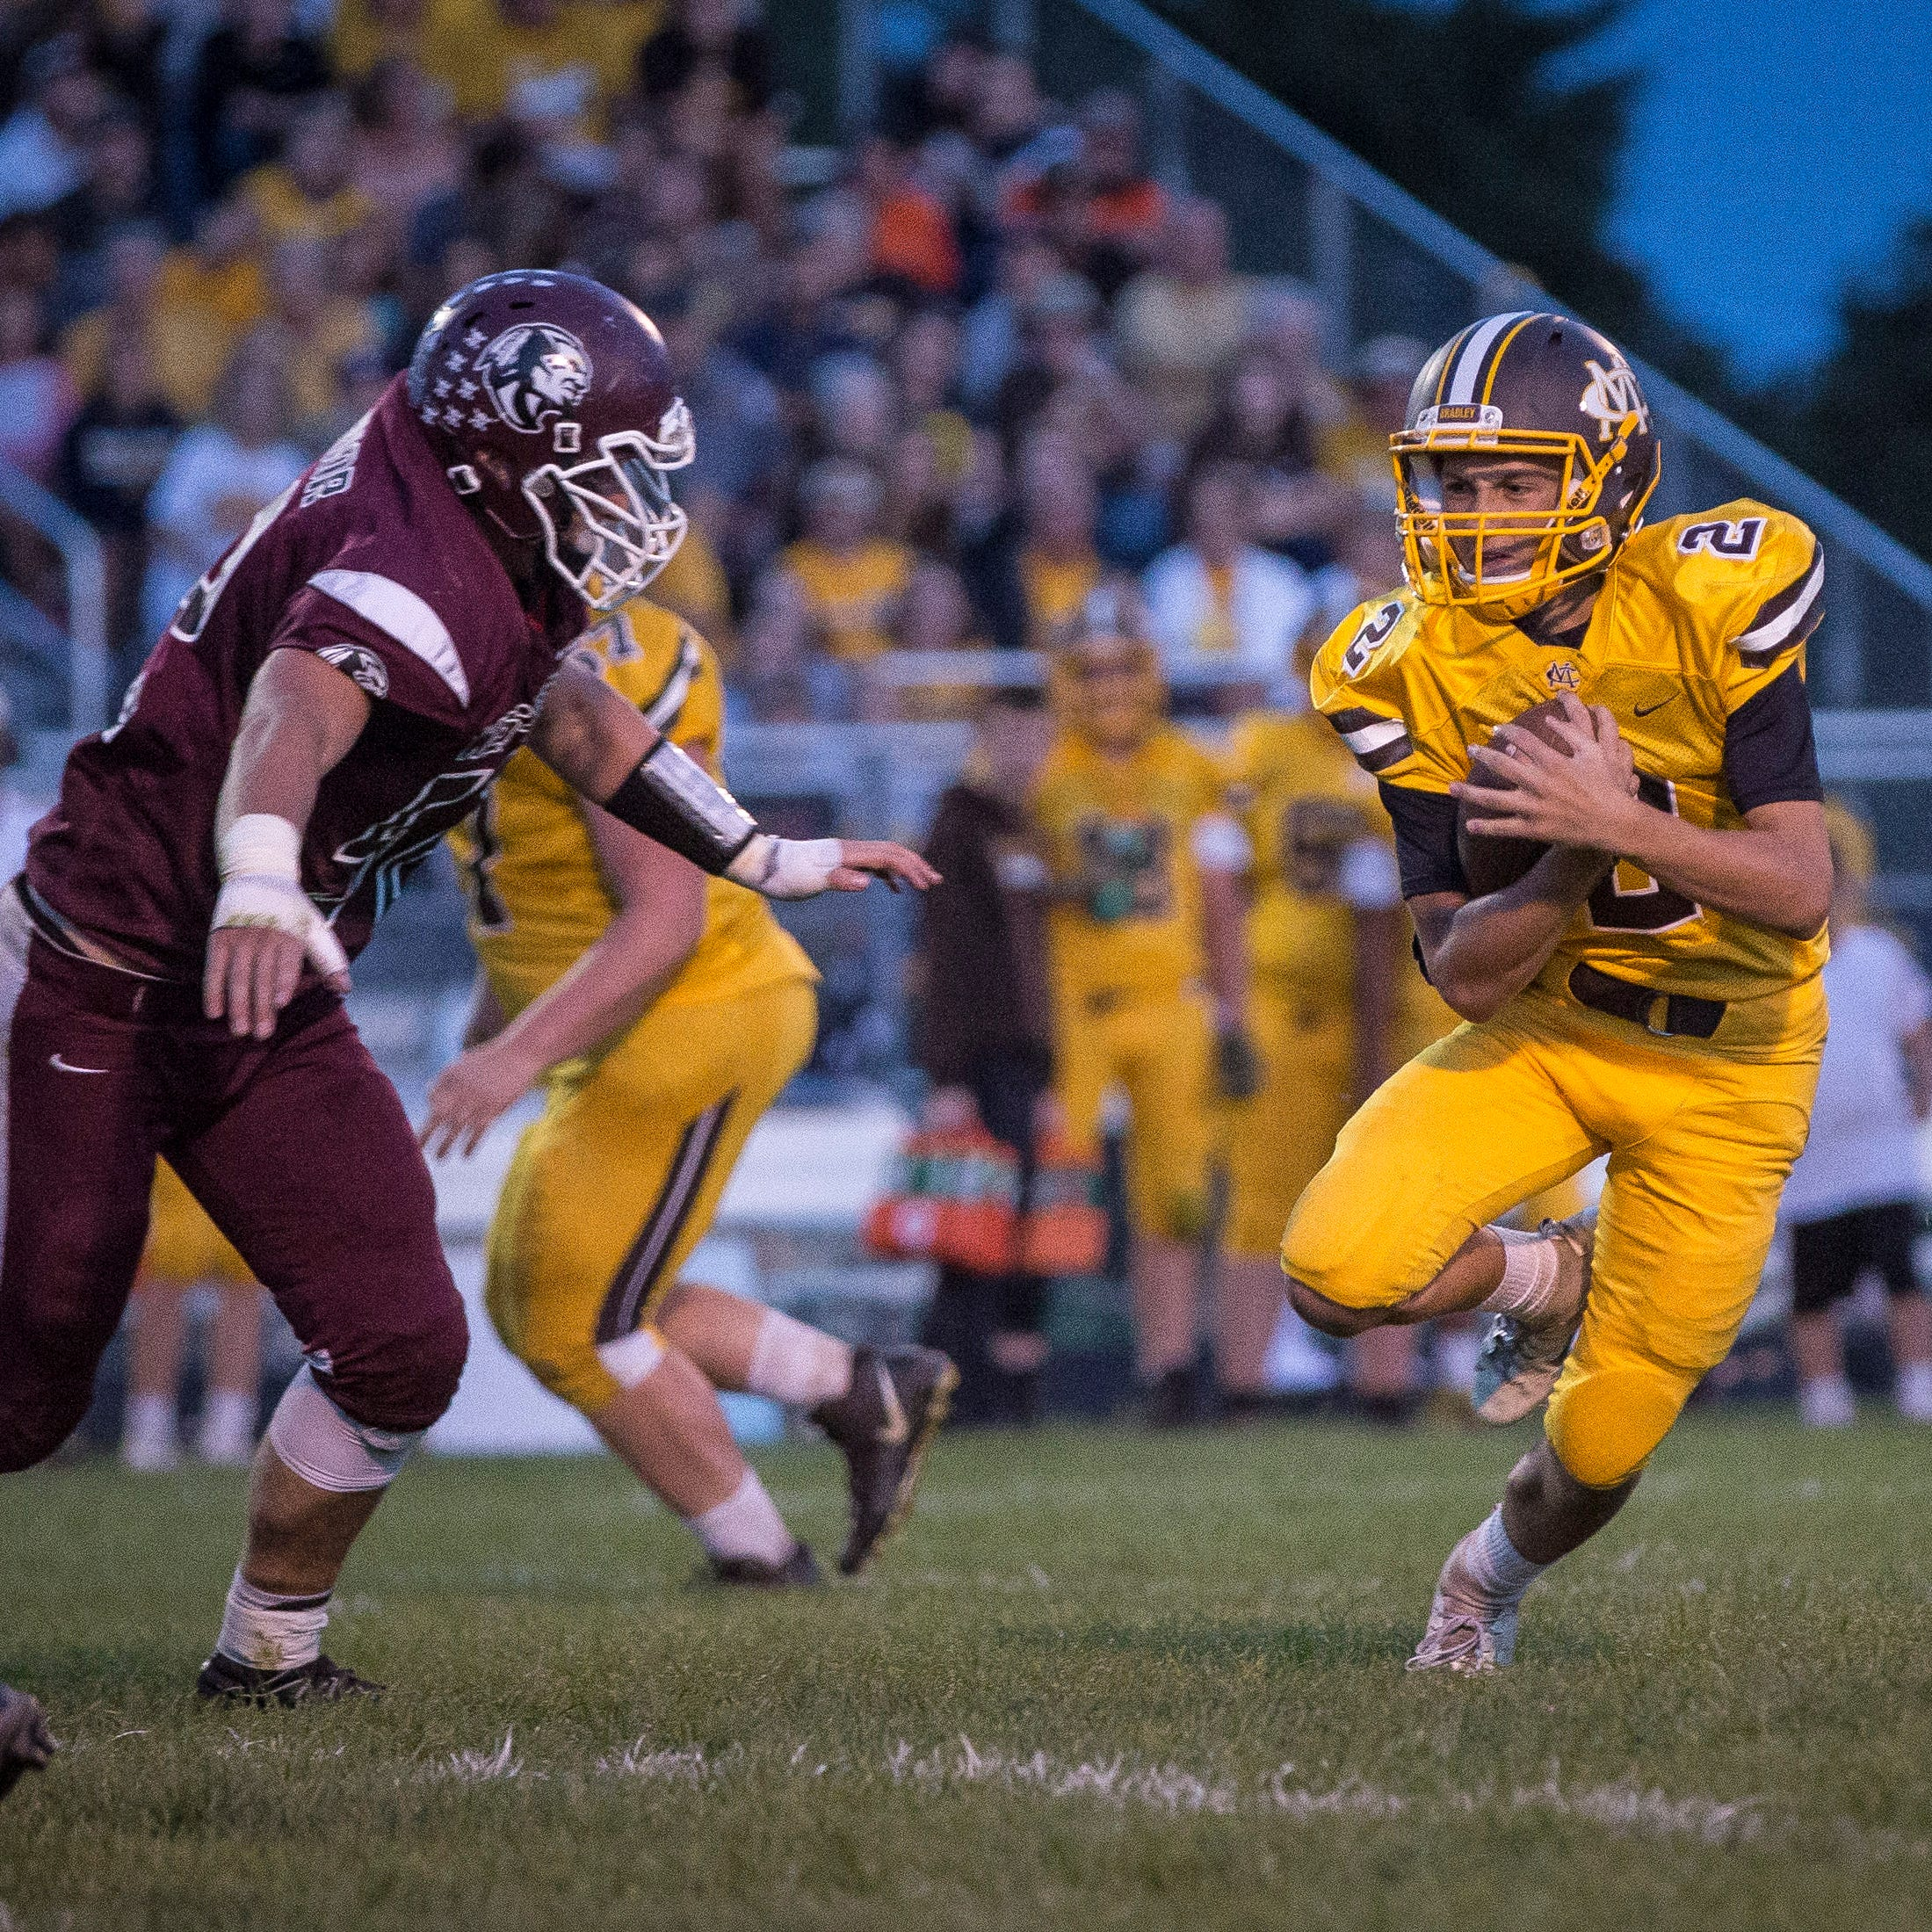 Monroe Central beat Wes-Del with a final score of 34-8 on Friday night at Wes-Del High School for the Harvest Helmet Classic.